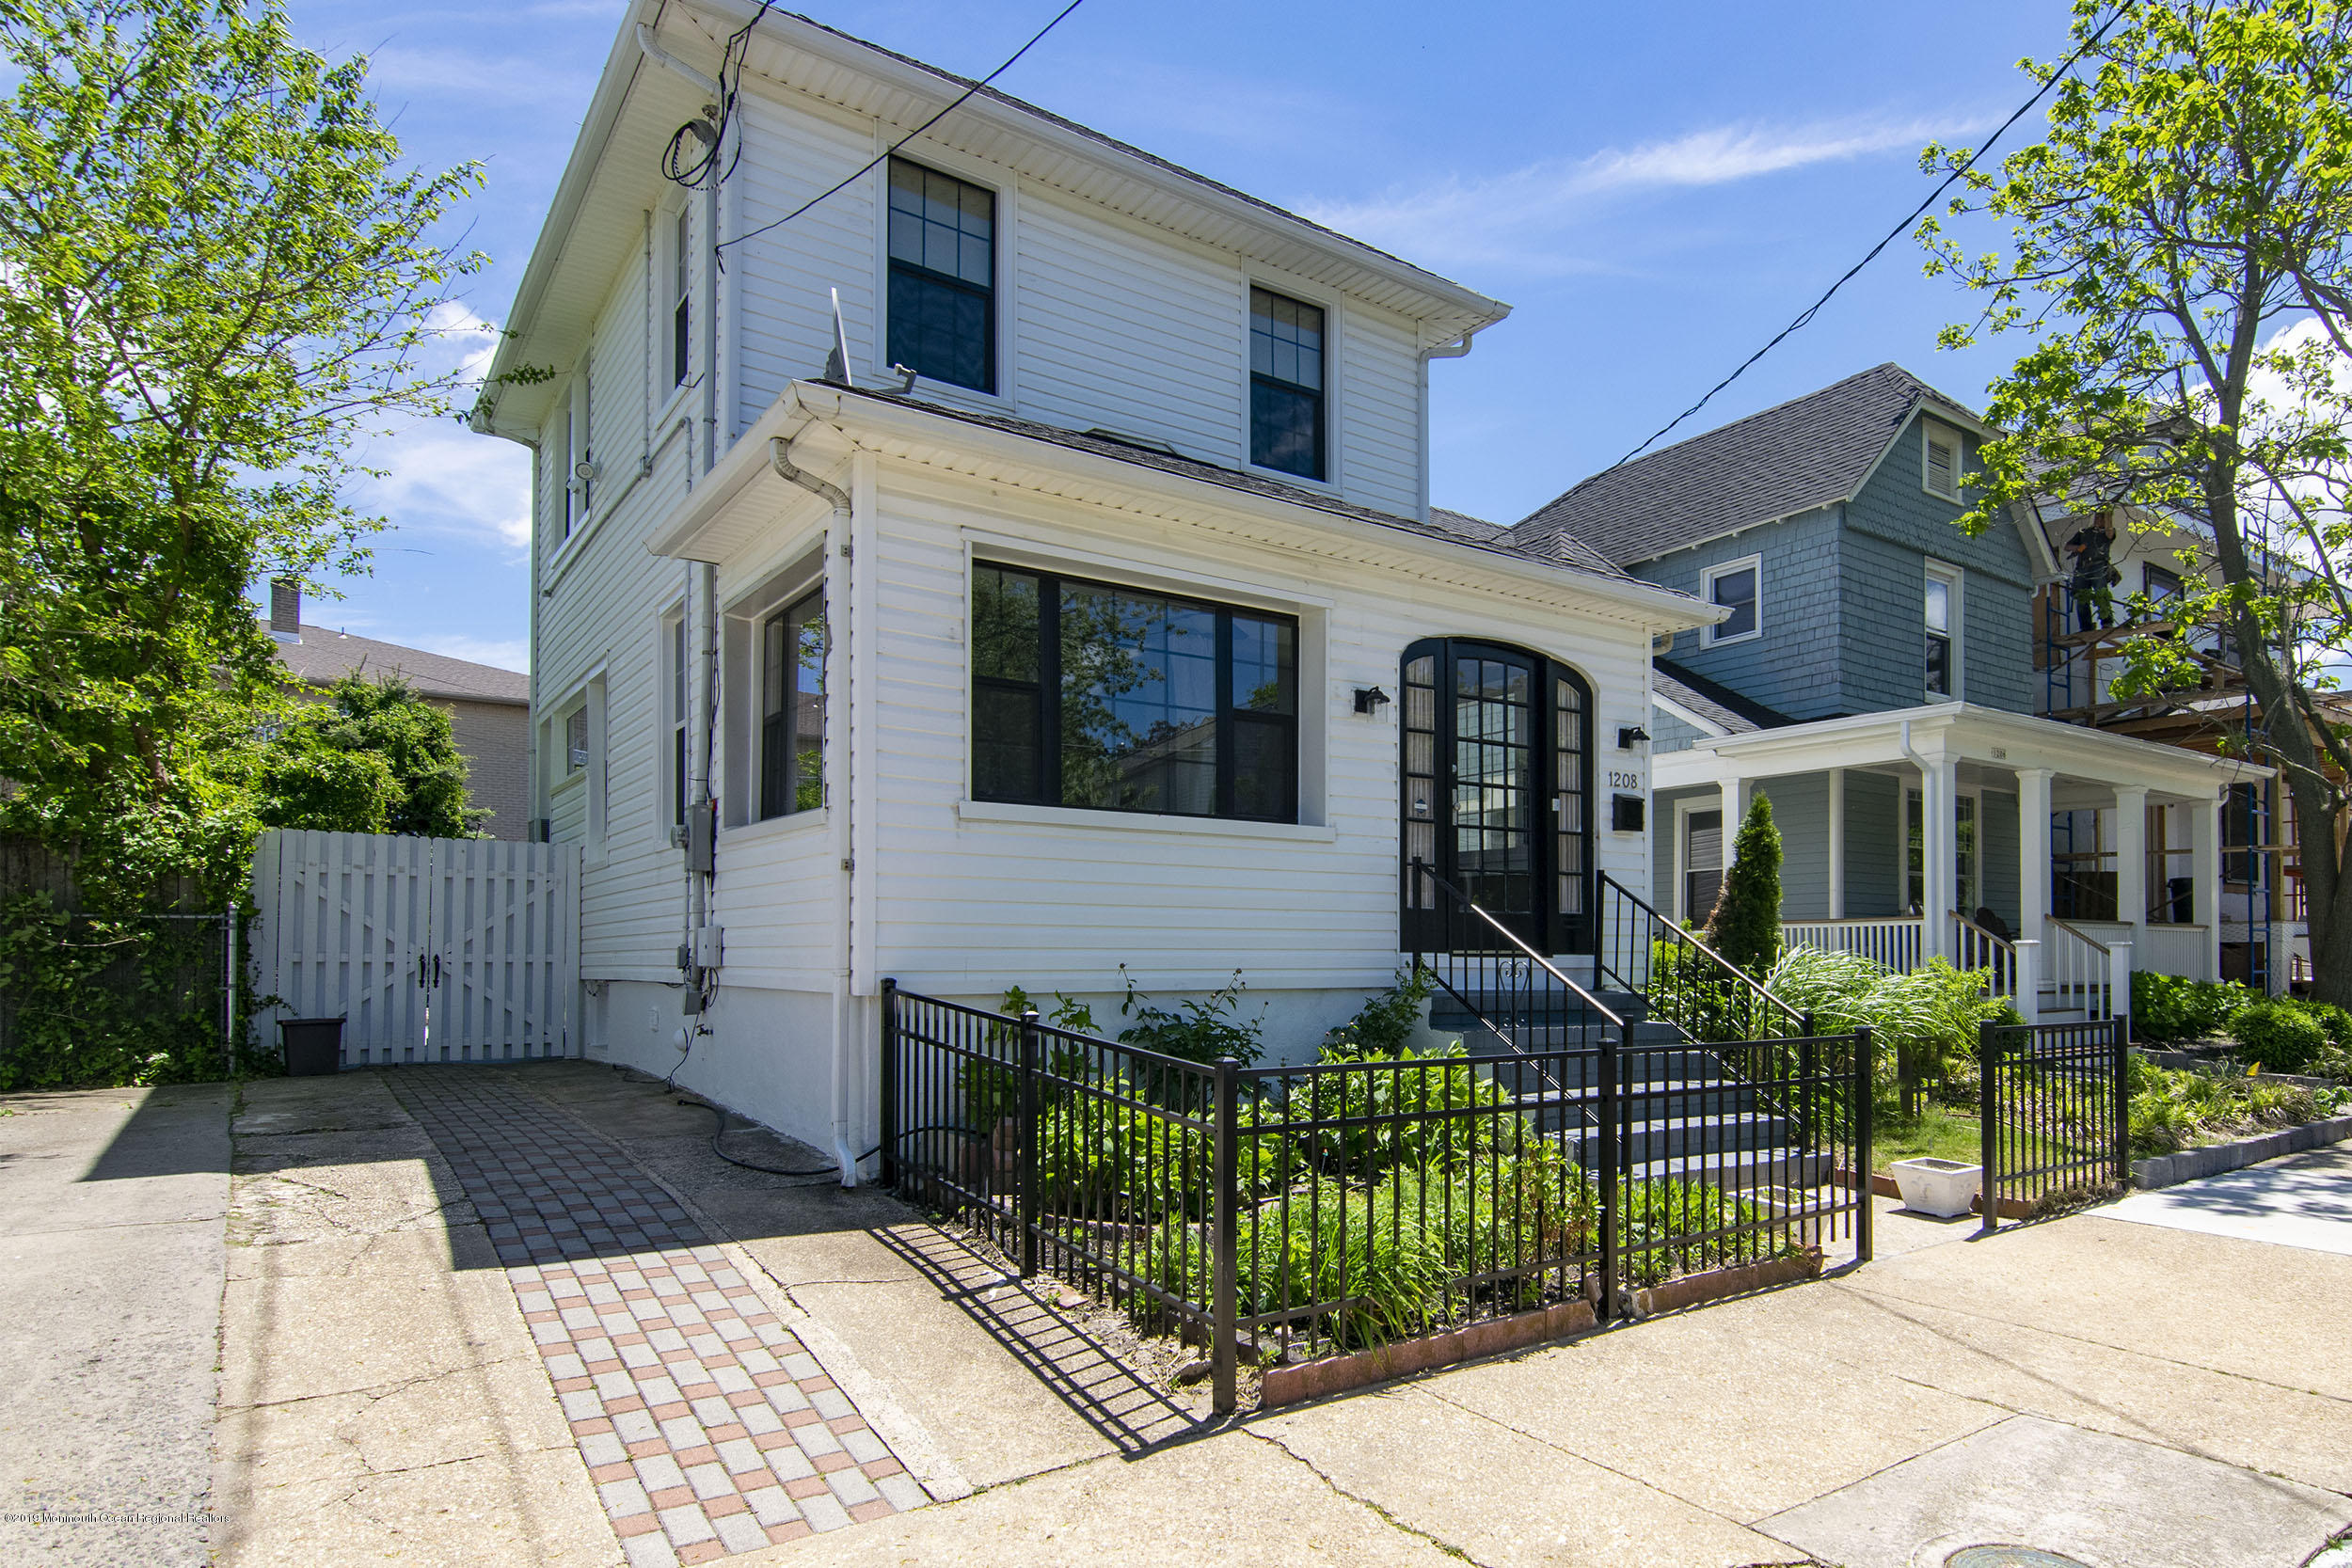 3BR, 2Ba just three blocks to the beach and under one mile to the restaurants on Cookman Ave. Small private fenced yard with patio. Two-car driveway! Updated kitchen and bath. Hardwood floors throughout. This move-in ready home is waiting for you!